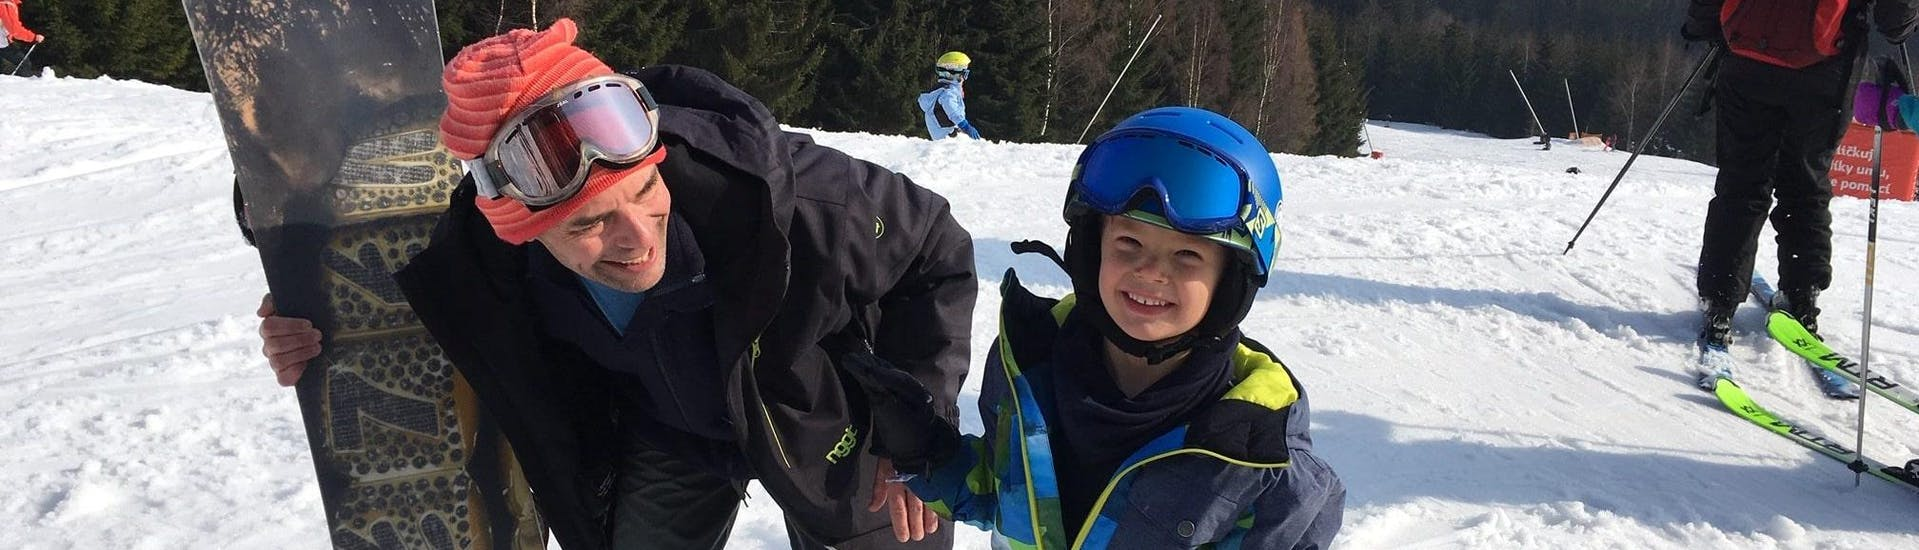 A small boy is enjoying the Private Ski Lessons for Kids - All Levels with his ski instructor from the ski school SnowMonkey.